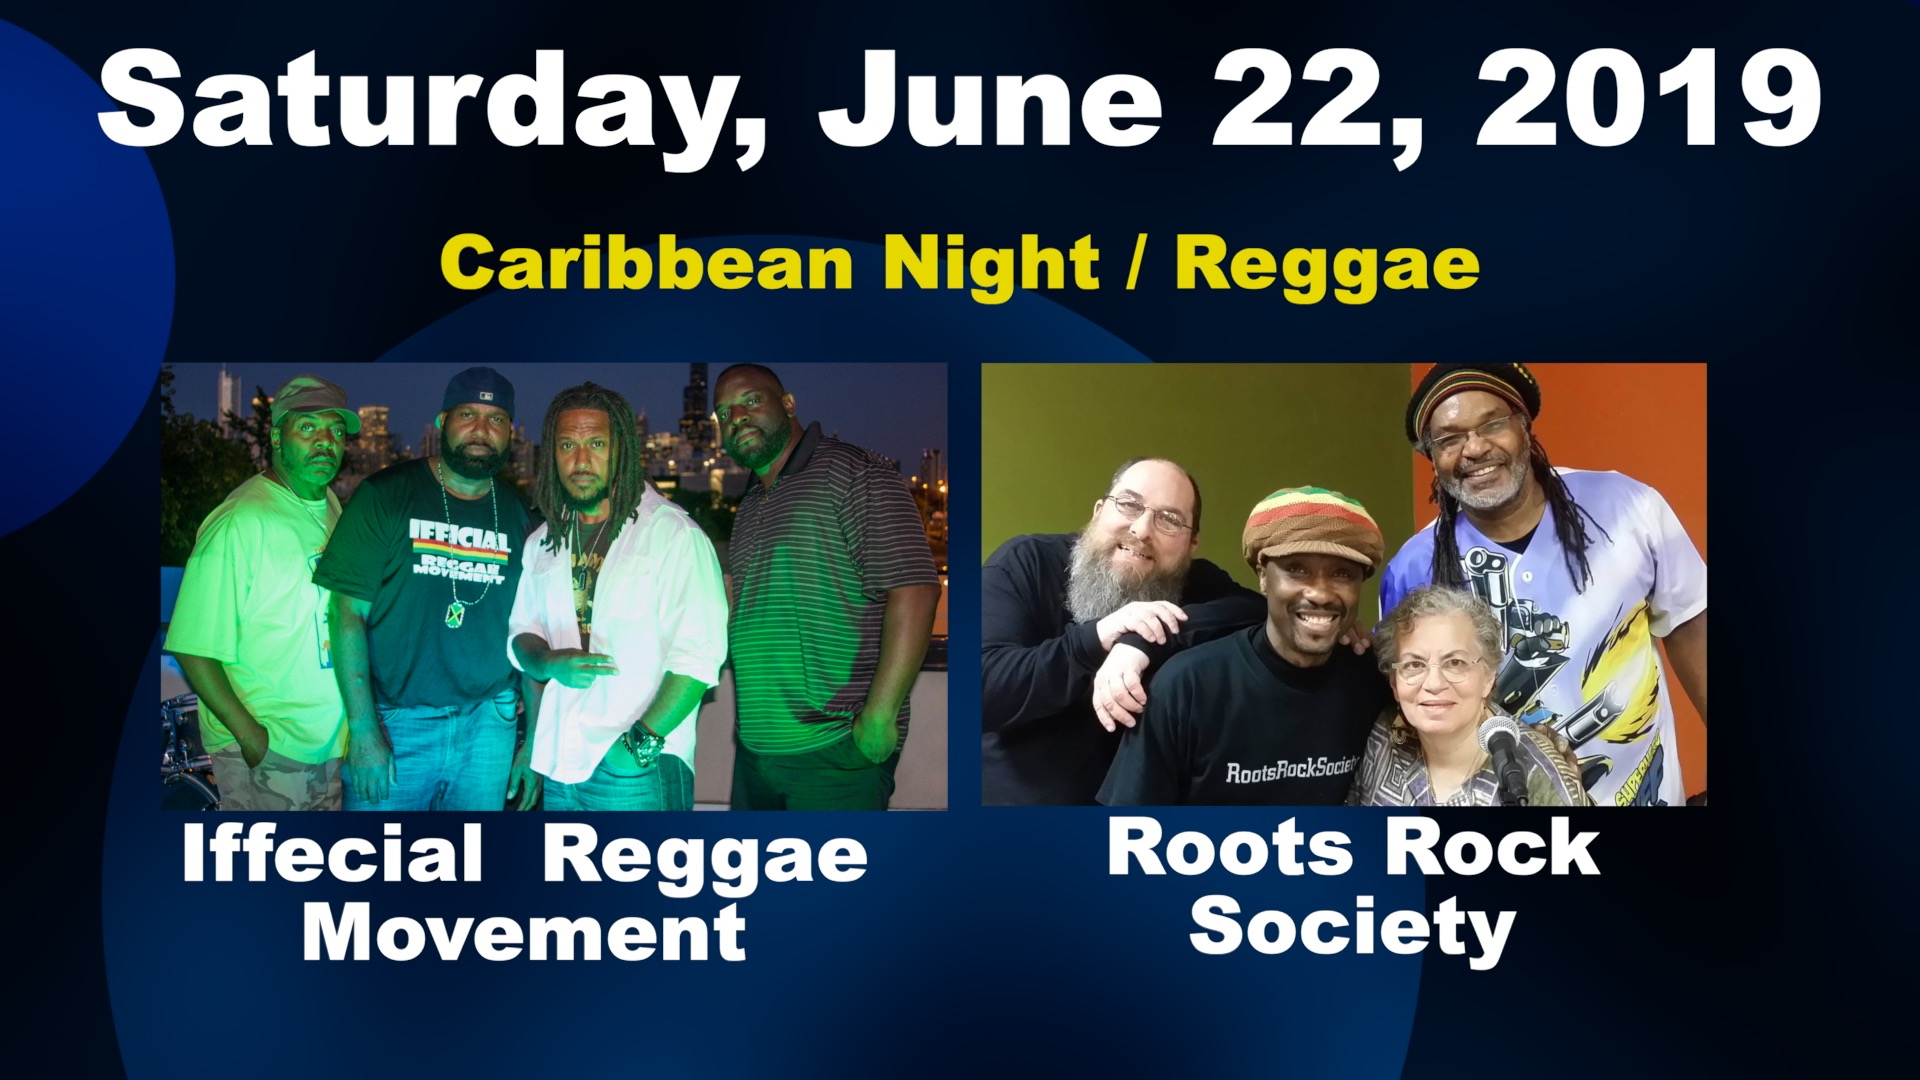 Image for POSTPONED: Ifficial Reggae Movement and Roots Rock Society